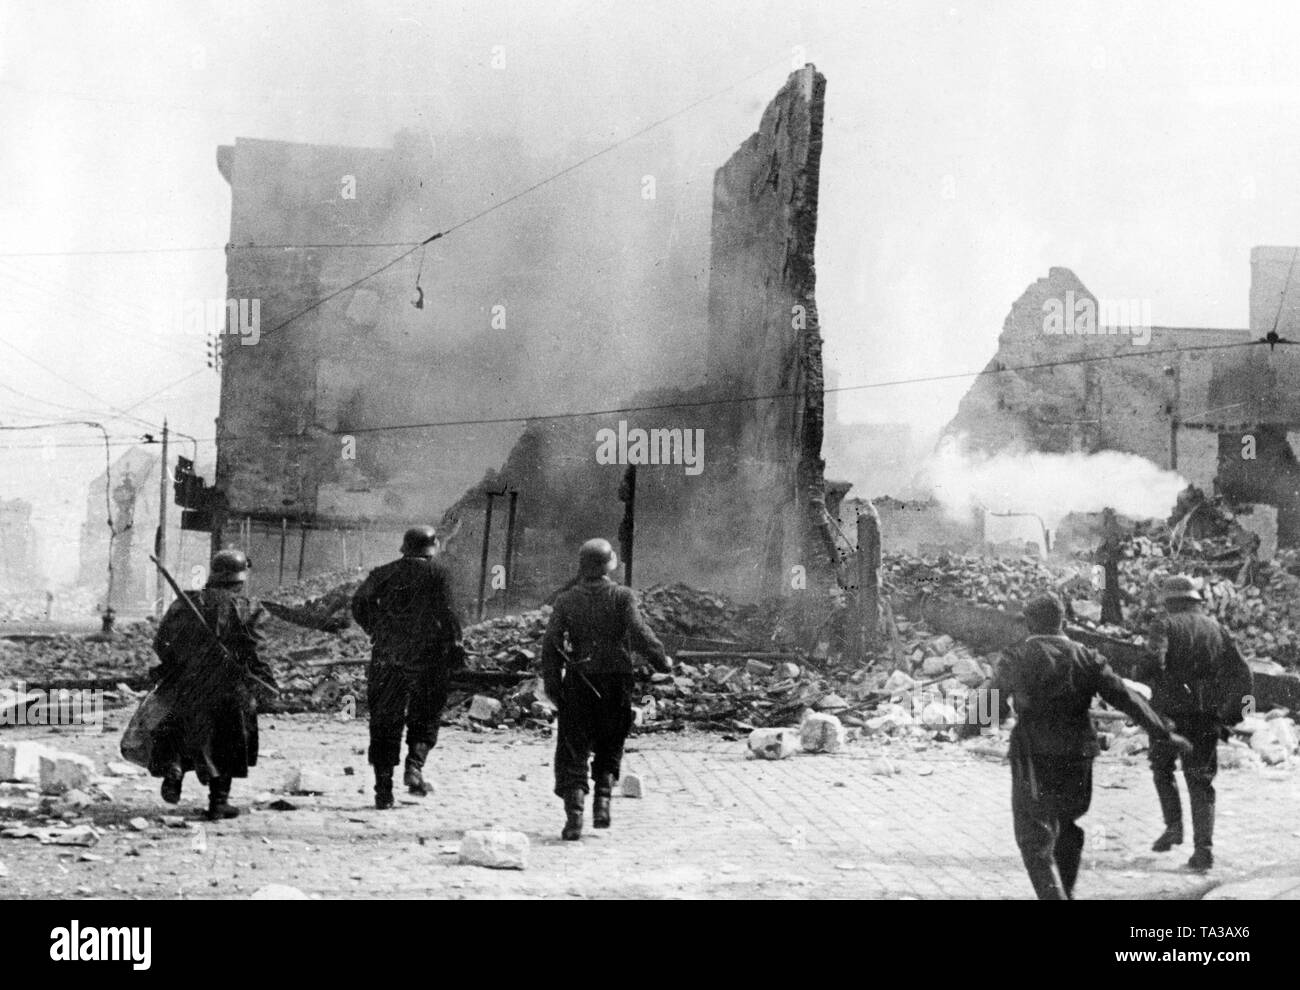 A group of German soldiers approach a smoking building, possibly after an air attack. Since only one of the soldiers is carrying a gun, the proximity to the front seems unlikely. Stock Photo